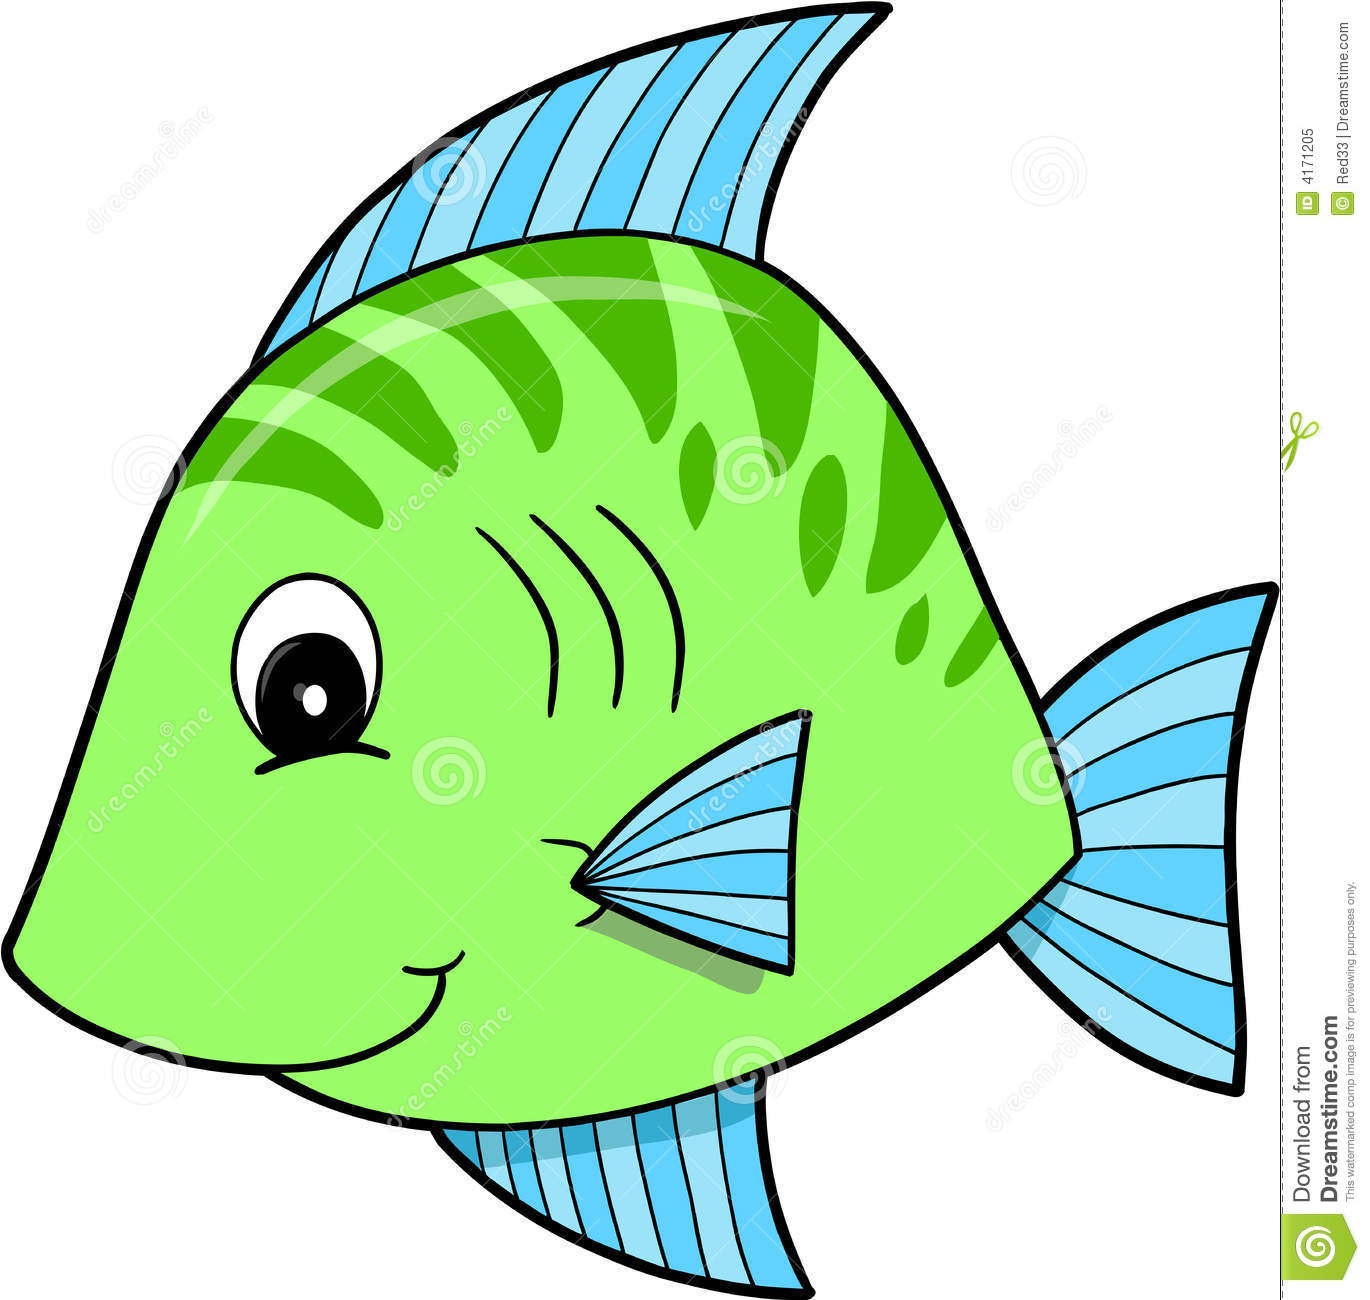 fish clipart drawing - photo #22